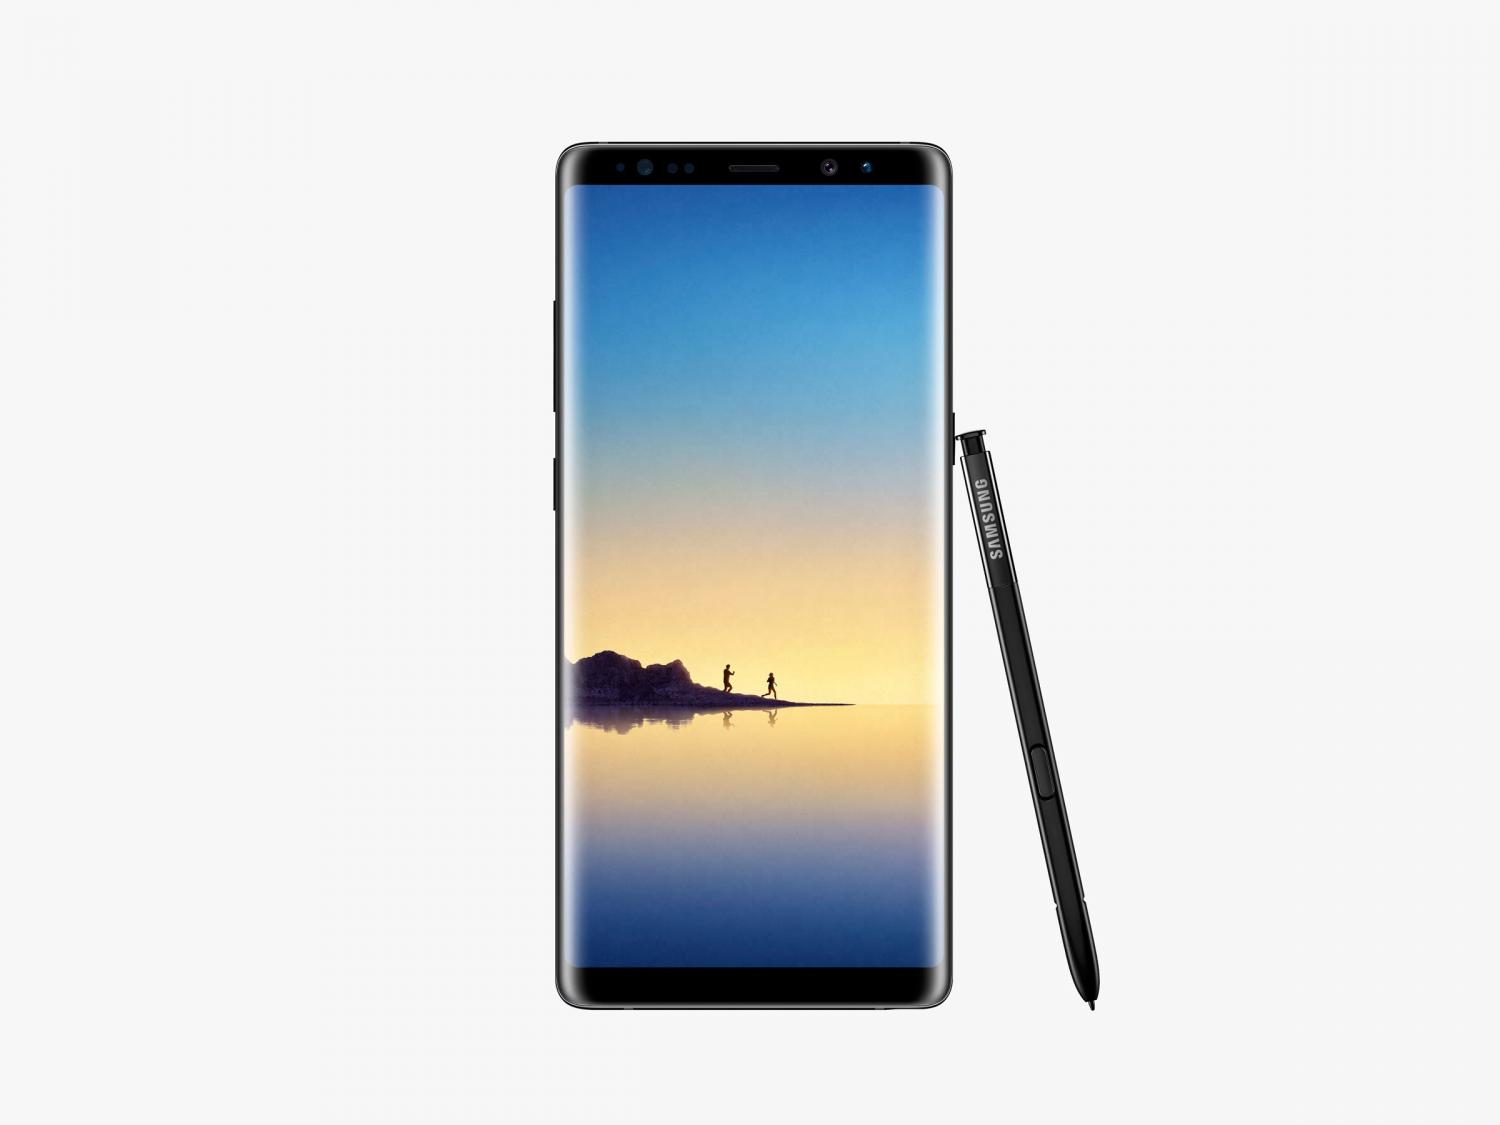 Learn everything about Samsung Galaxy Note 8 in pictures